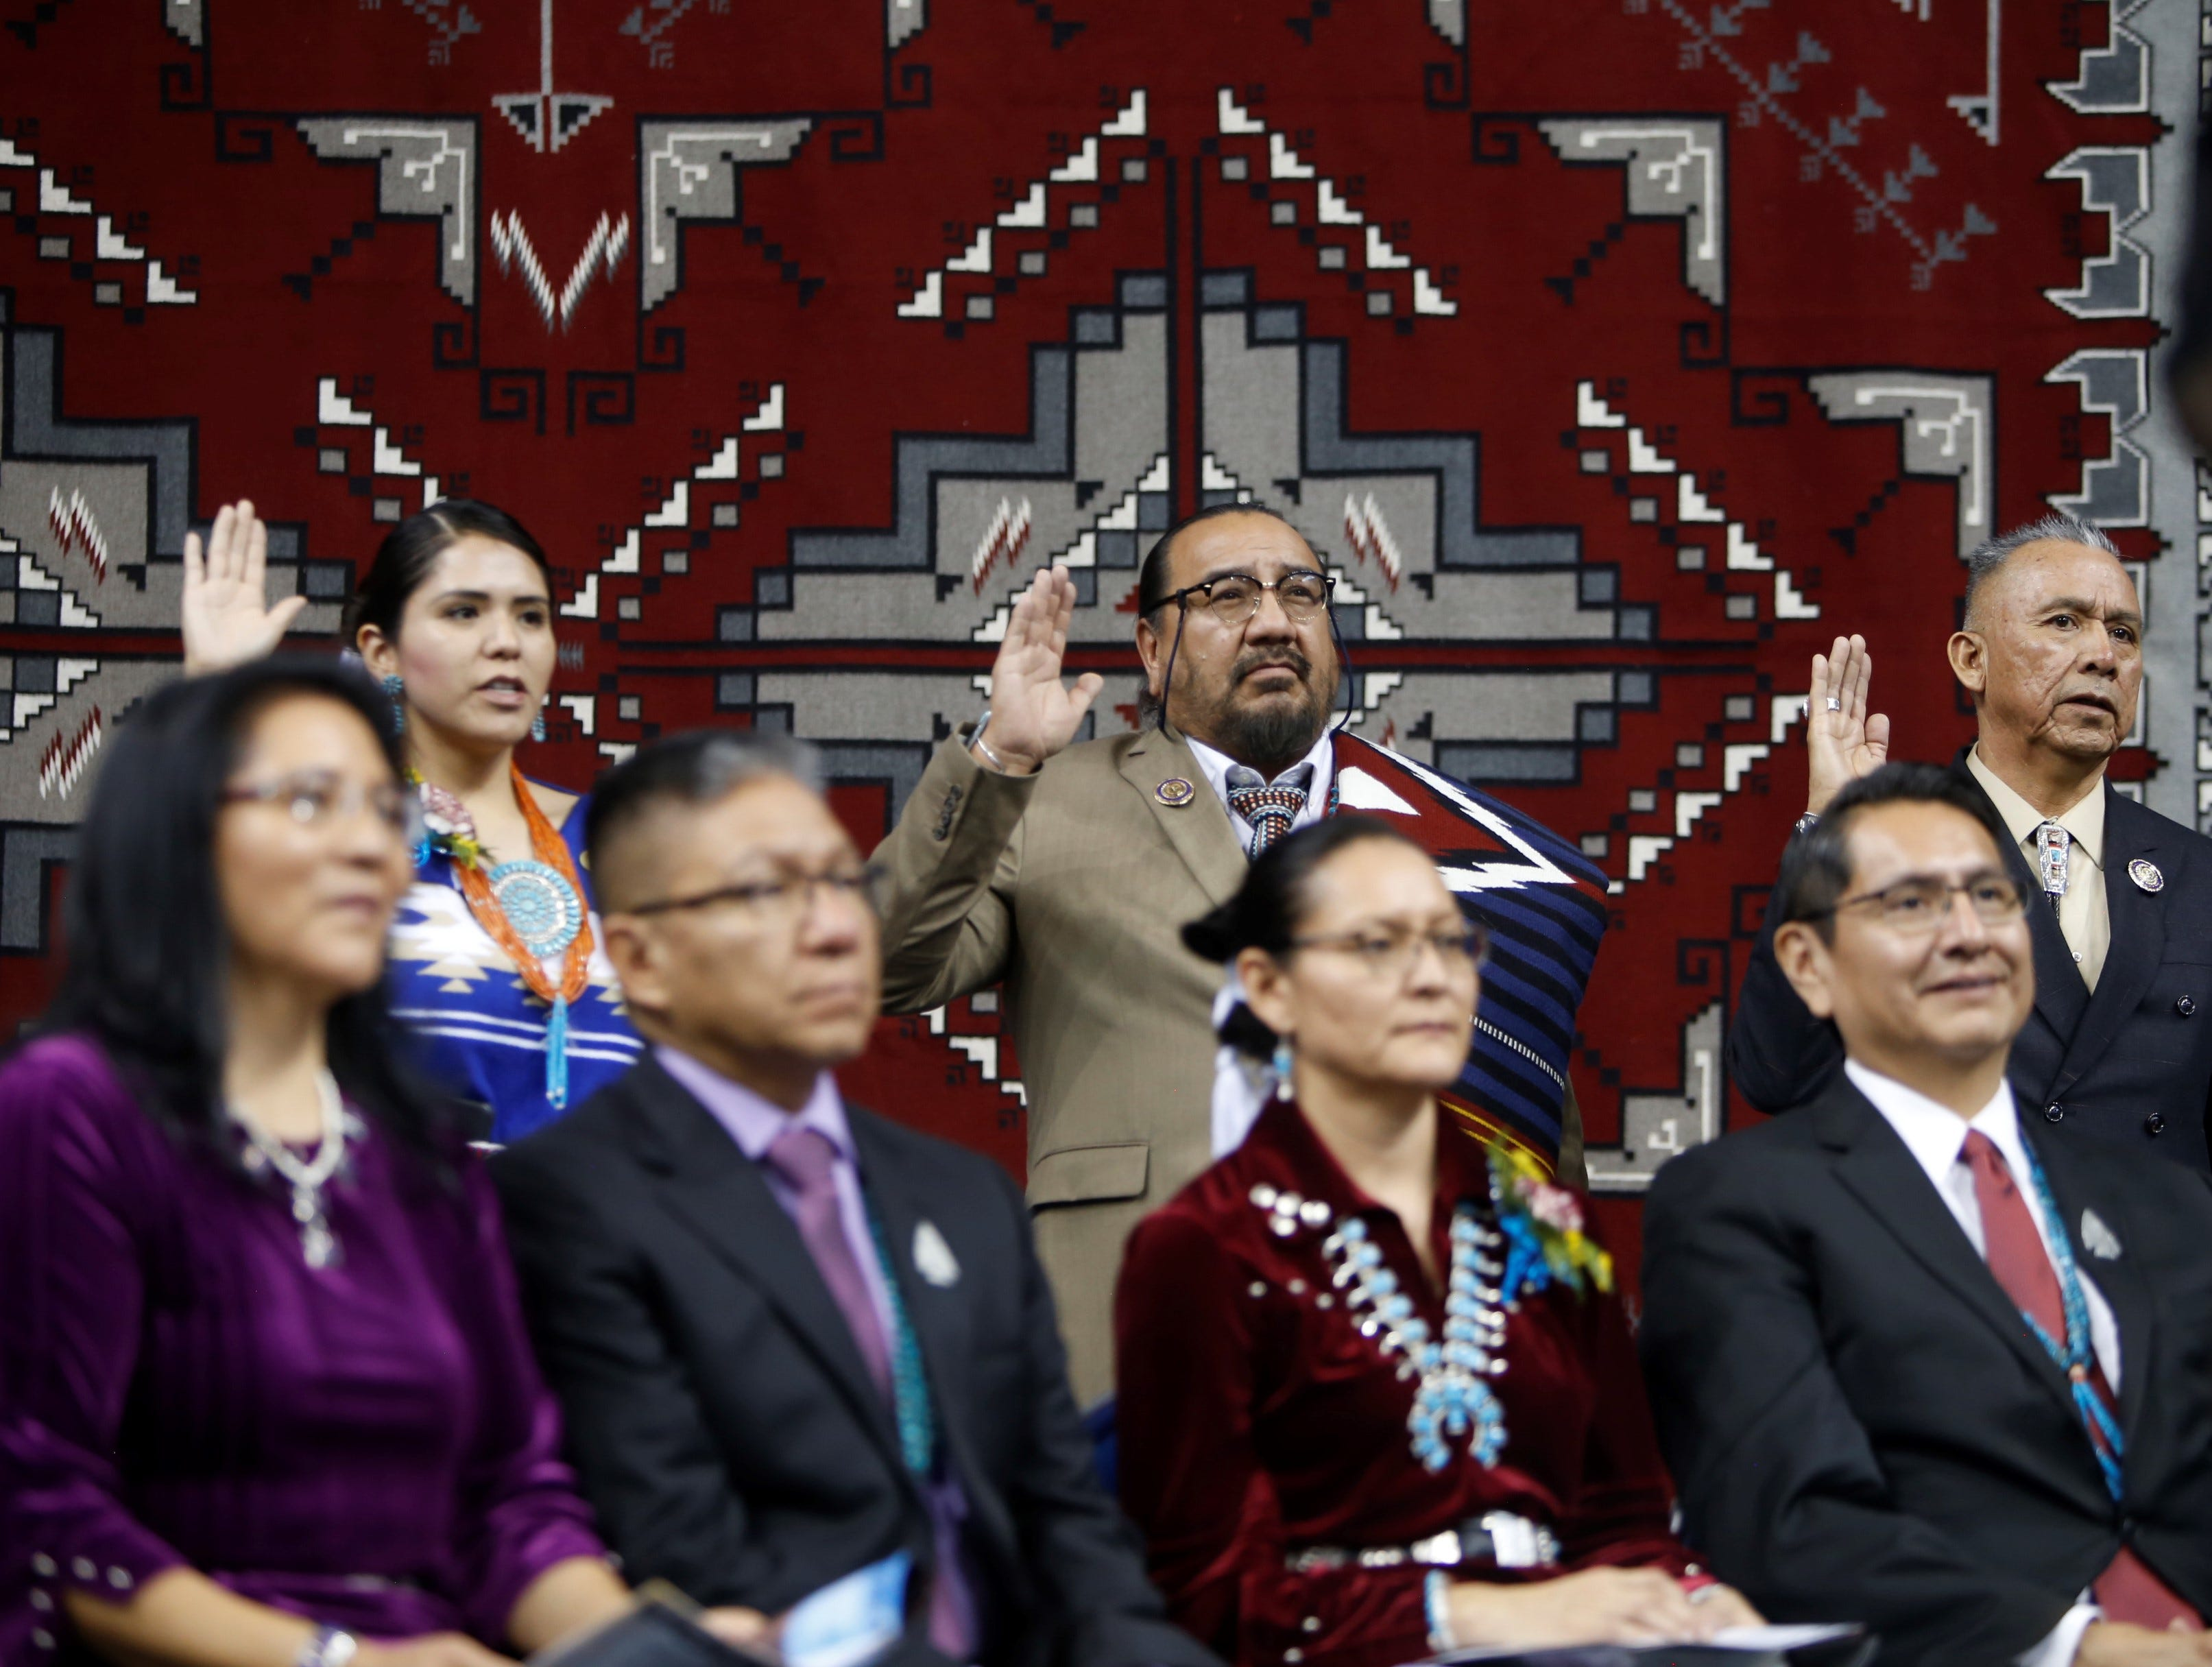 From left, Charlaine Tso, Raymond Smith Jr. and Rick Nez take the oath of office for the Navajo Nation Council during Tuesday's inauguration at the Bee Hółdzil Fighting Scouts Events Center in Fort Defiance, Ariz.